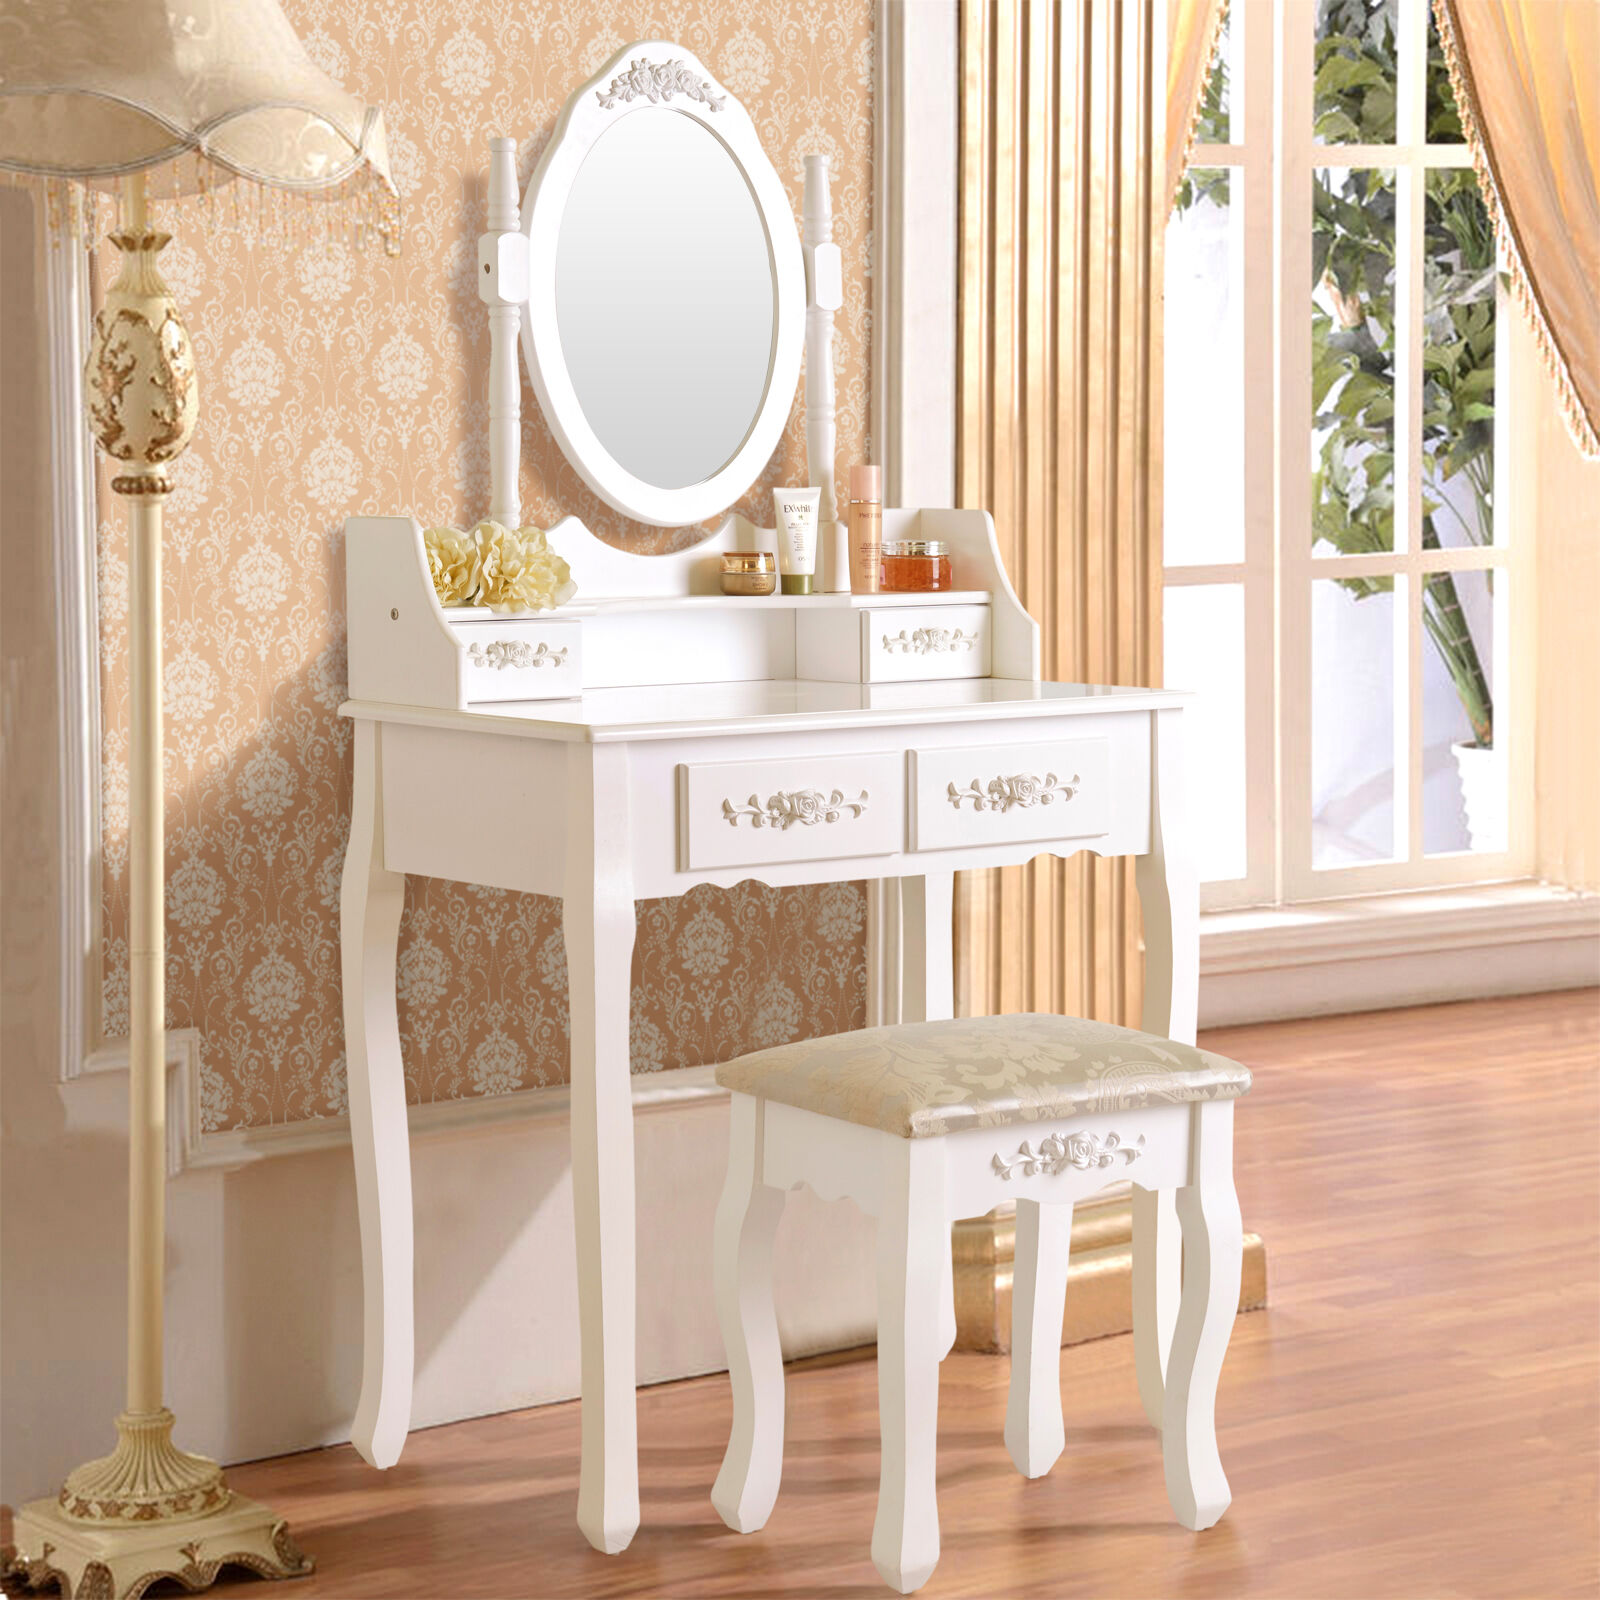 Bedroom Vanities | eBay